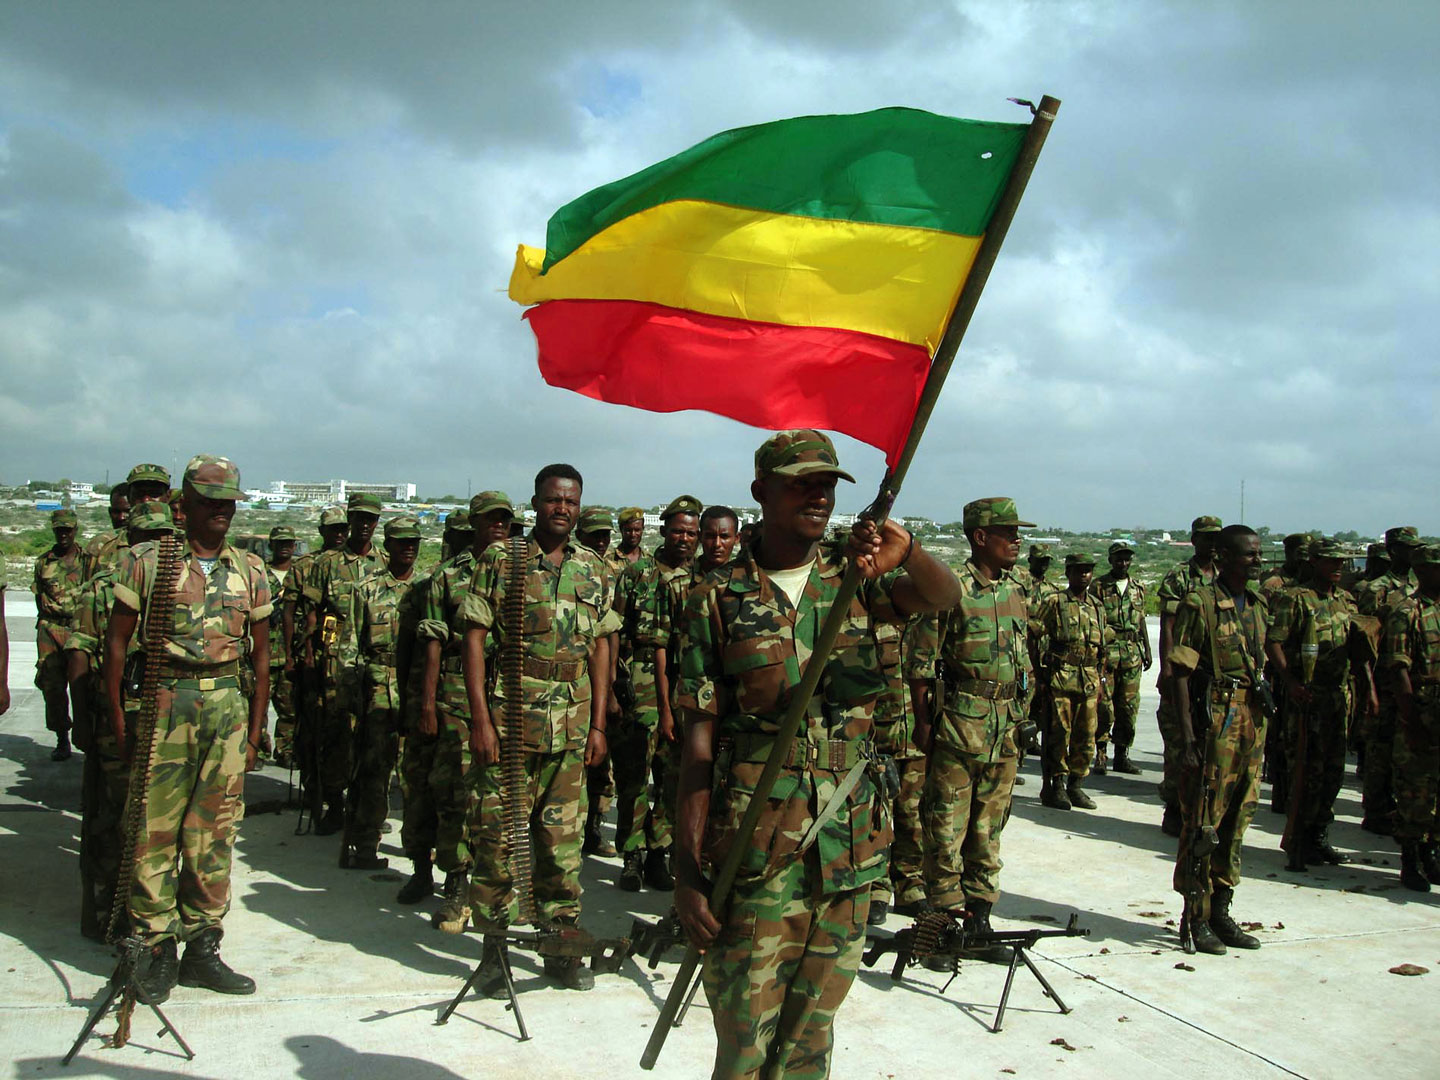 The first batch of Ethiopian troops leaving the Somali capital Mogadishu hold a departure ceremony 23 January 2007 at Afisiyooni Air Base. Ethiopian troops began withdrawing from Mogadishu nearly four weeks after they helped oust Islamist forces from the Somali capital. A special departure ceremony was held for the pullout of the first batch of around 200 soldiers at the former headquarters of the Somali air force in the southern outskirts of the capital. AFP PHOTO/STRINGER        (Photo credit should read STRINGER/AFP/GettyImages)